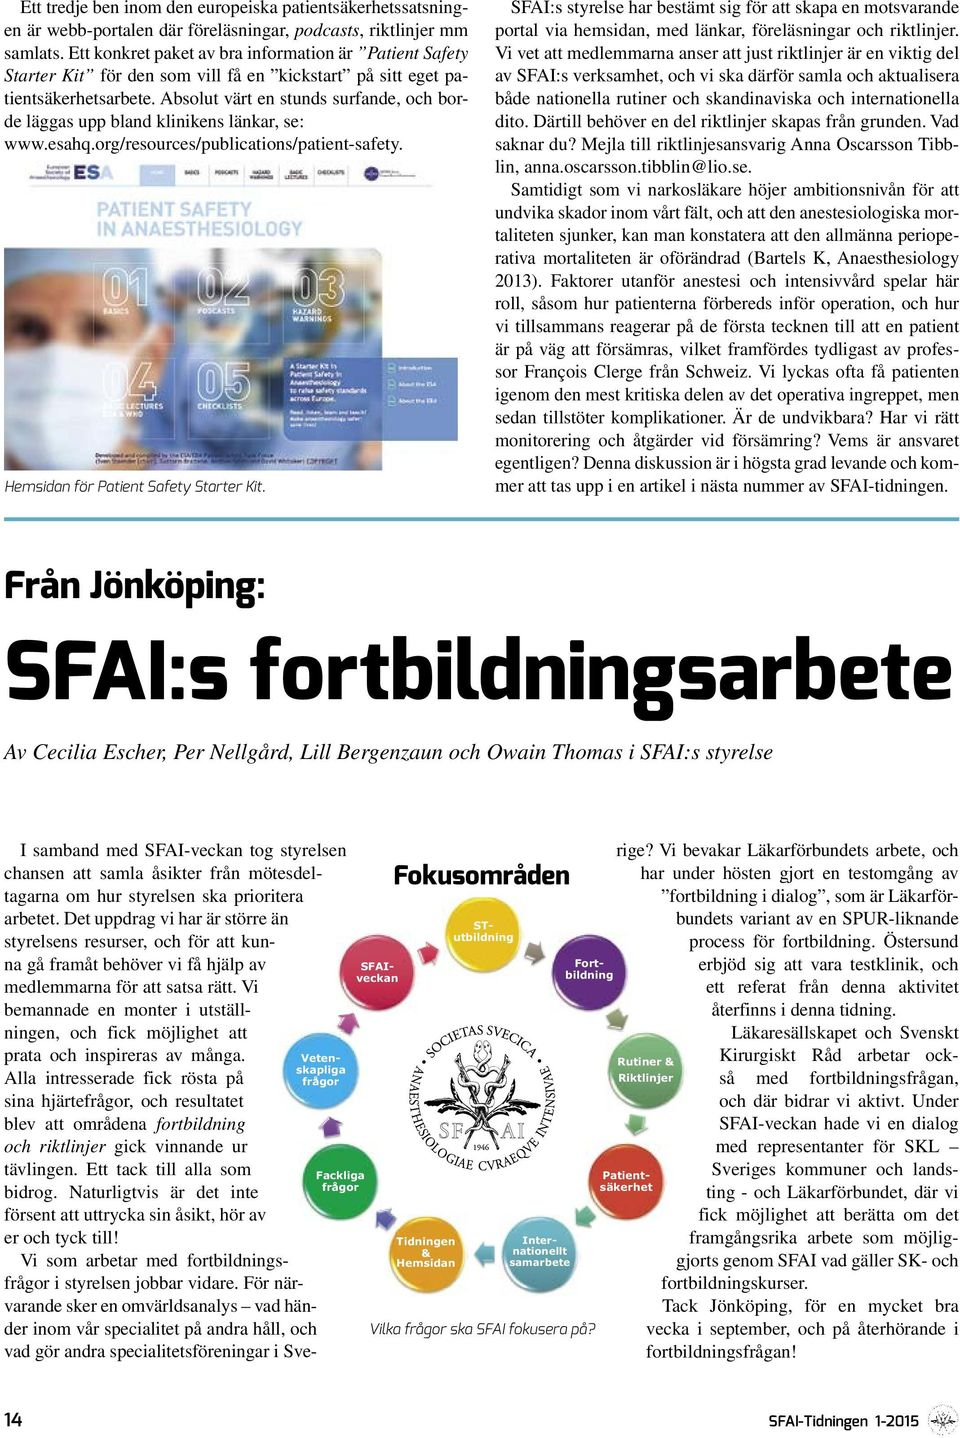 Absolut värt en stunds surfande, och borde läggas upp bland klinikens länkar, se: www.esahq.org/resources/publications /patient-safety. Hemsidan för Patient Safety Starter Kit.